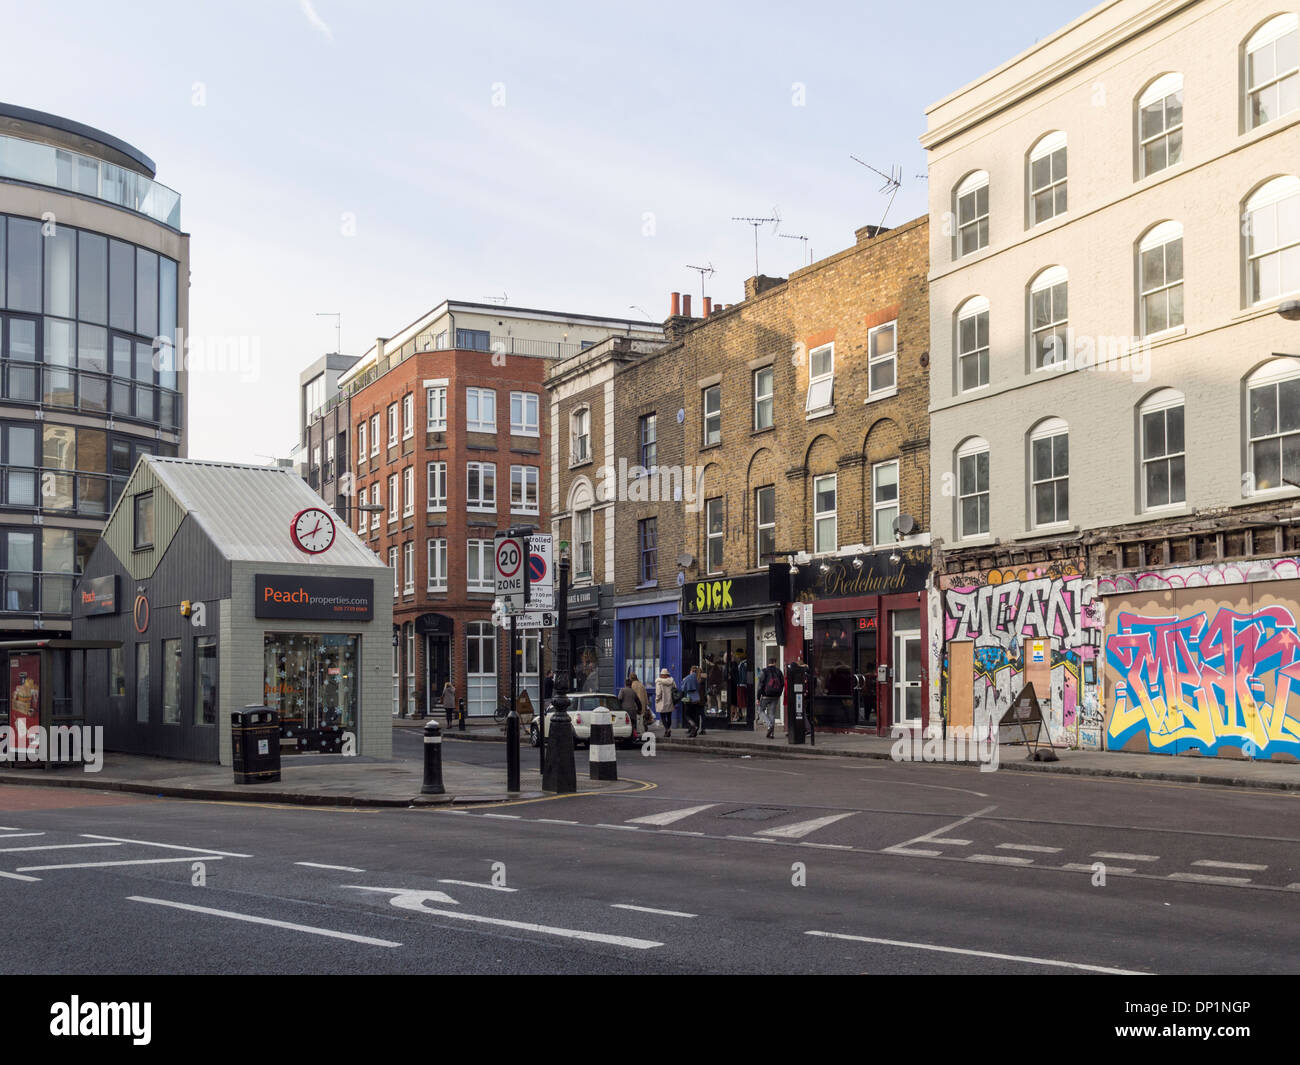 Junction of Bethnal Green Road and Redchurch Street, London, England - Stock Image